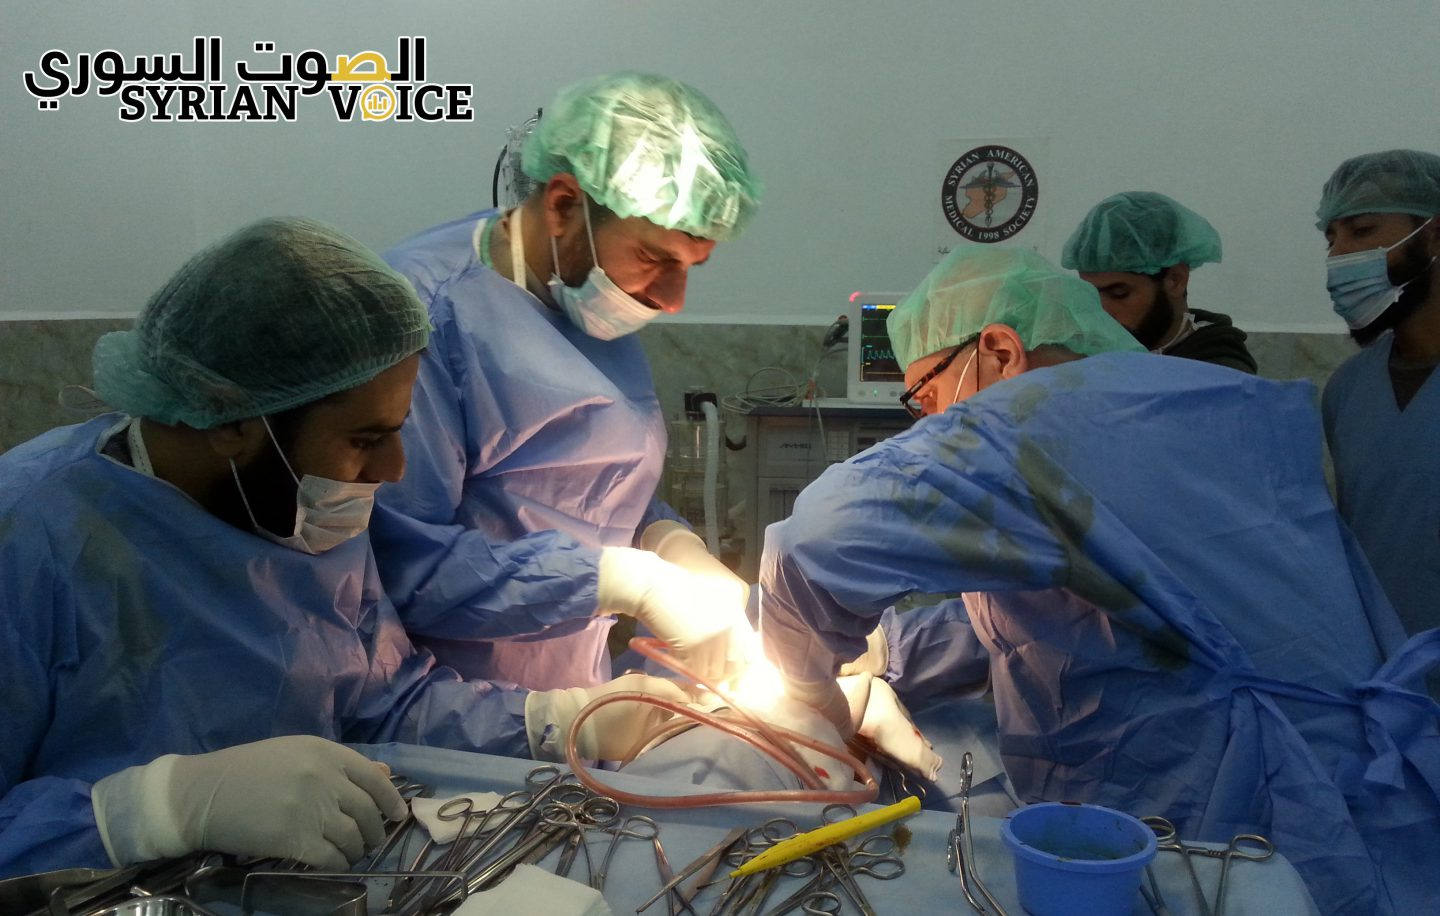 Over-worked and under-staffed: Doctor shortage in Hama leaves local patients with few options